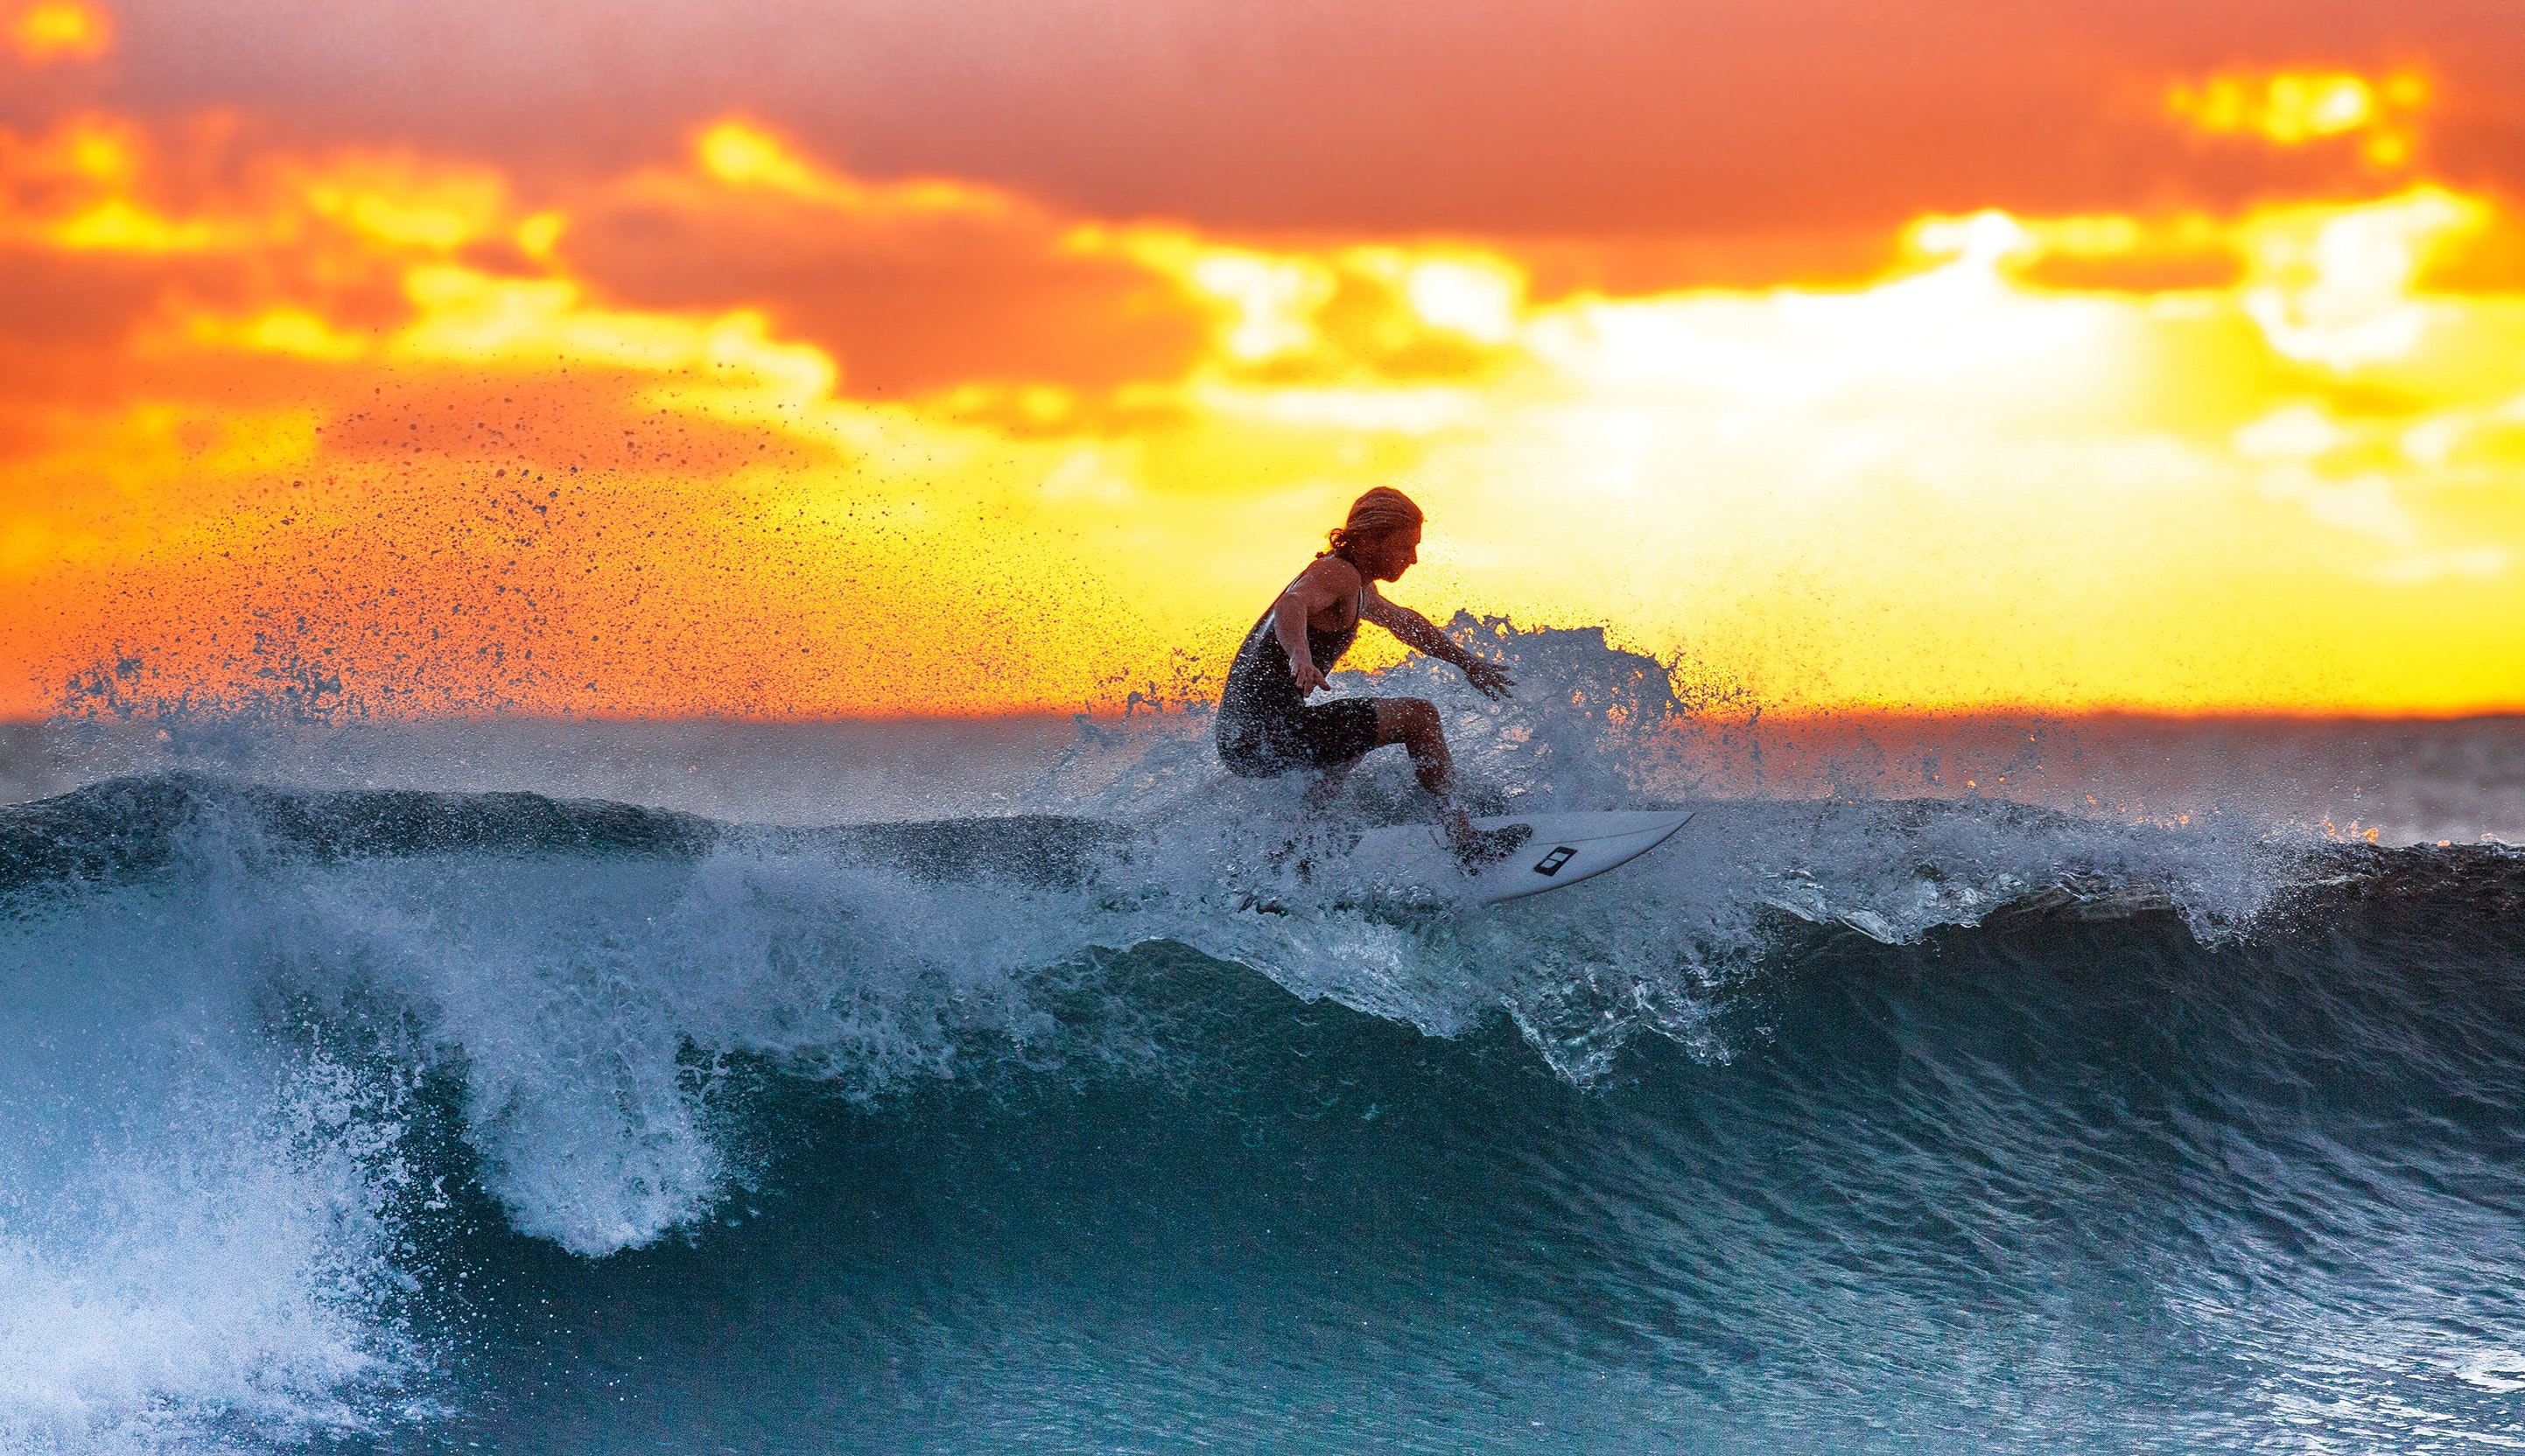 Surfers find solace in their daily dose of vitamin sea amidst vastly polluted waters